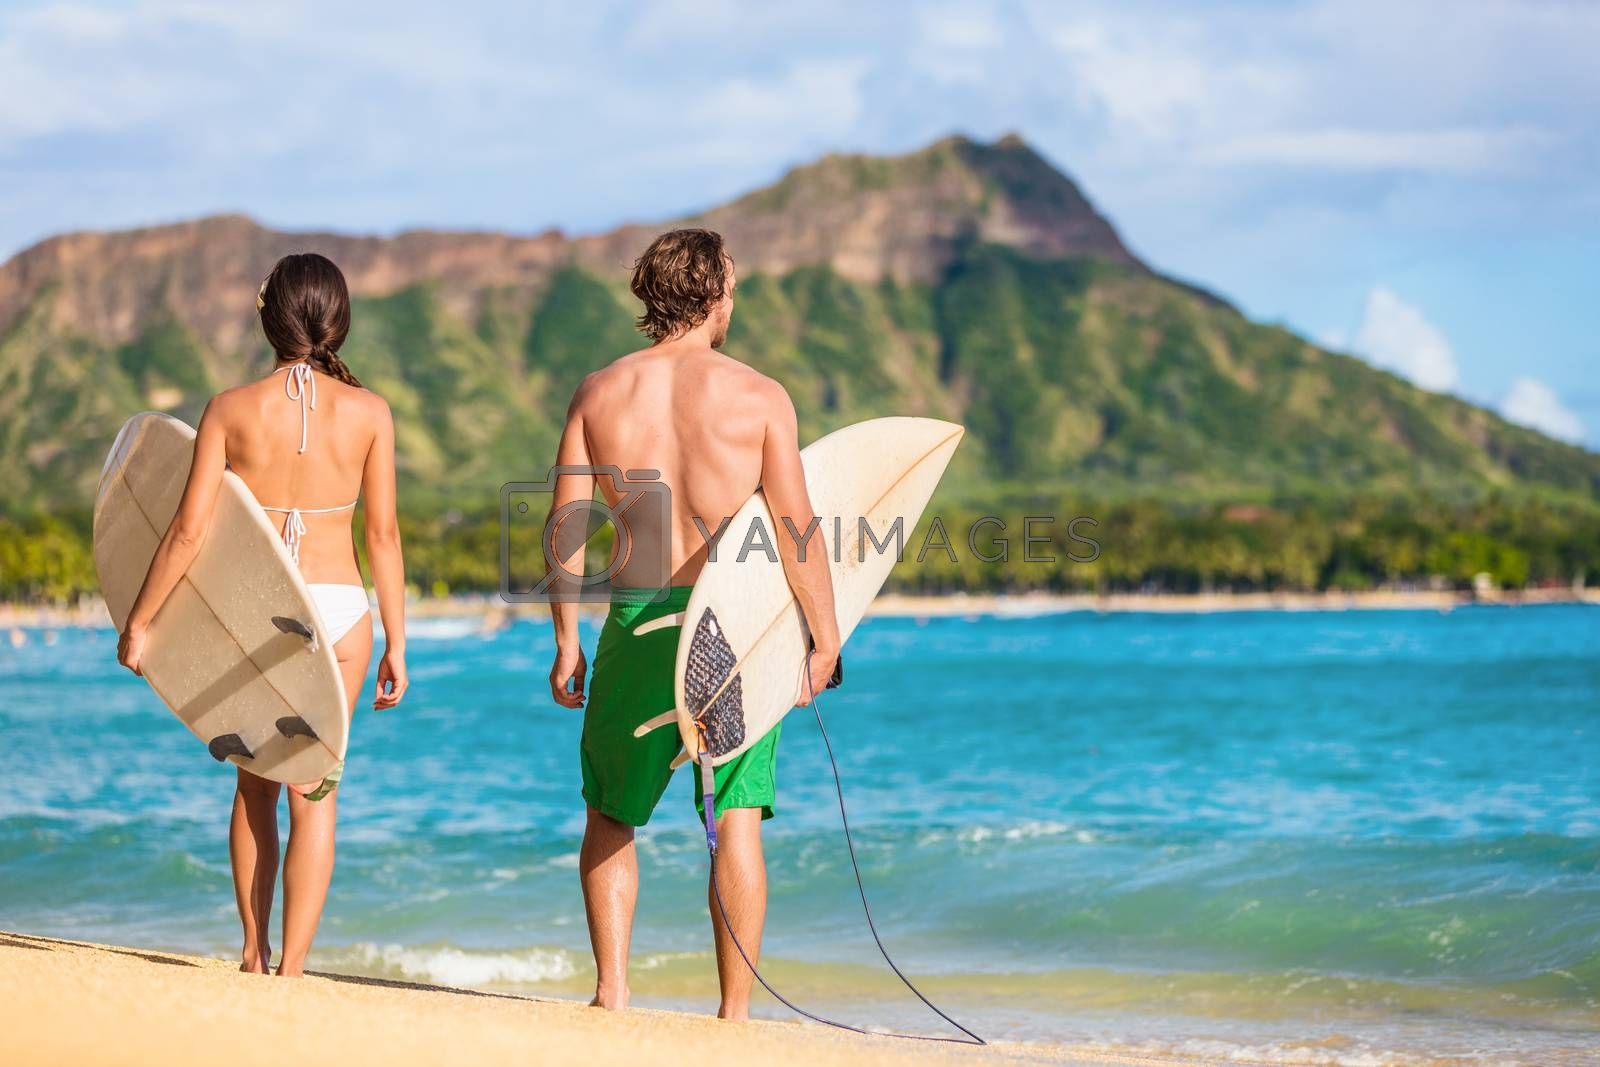 Hawaii surfers people relaxing on waikiki beach with surfboards looking at waves in Honolulu, Hawaii. Healthy active lifestyle fitness couple at sunset with diamond head mountain in the background by Maridav